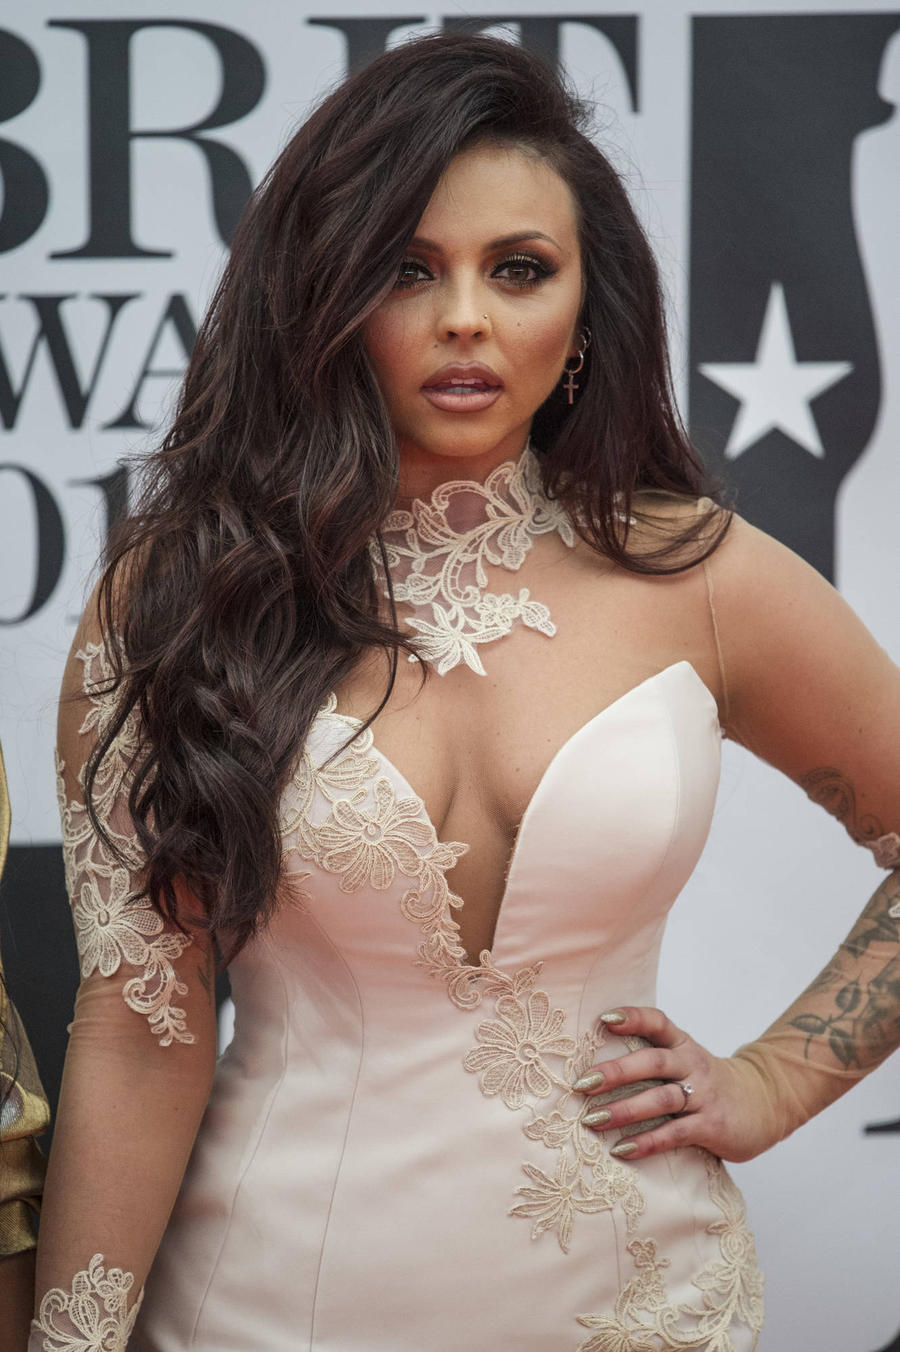 Little Mix's Jesy Nelson's Wedding Plans On Hold